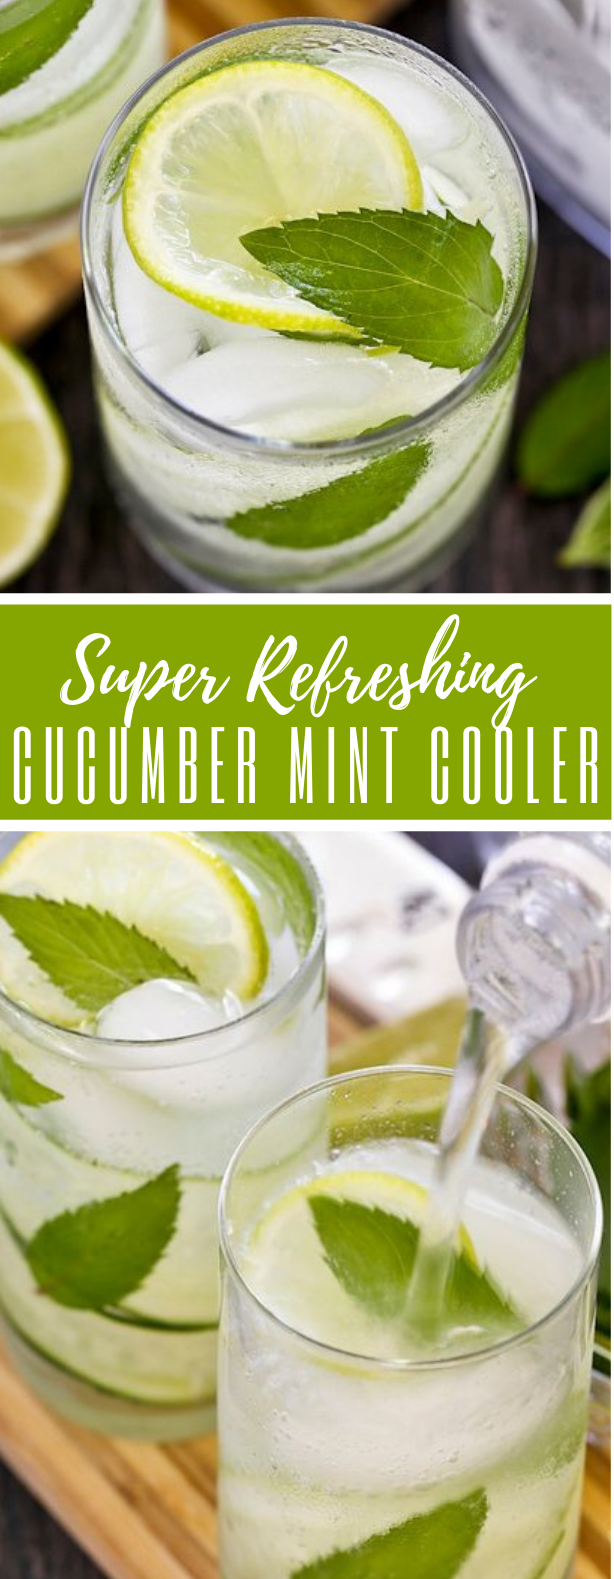 CUCUMBER MINT COOLER #drink #soda